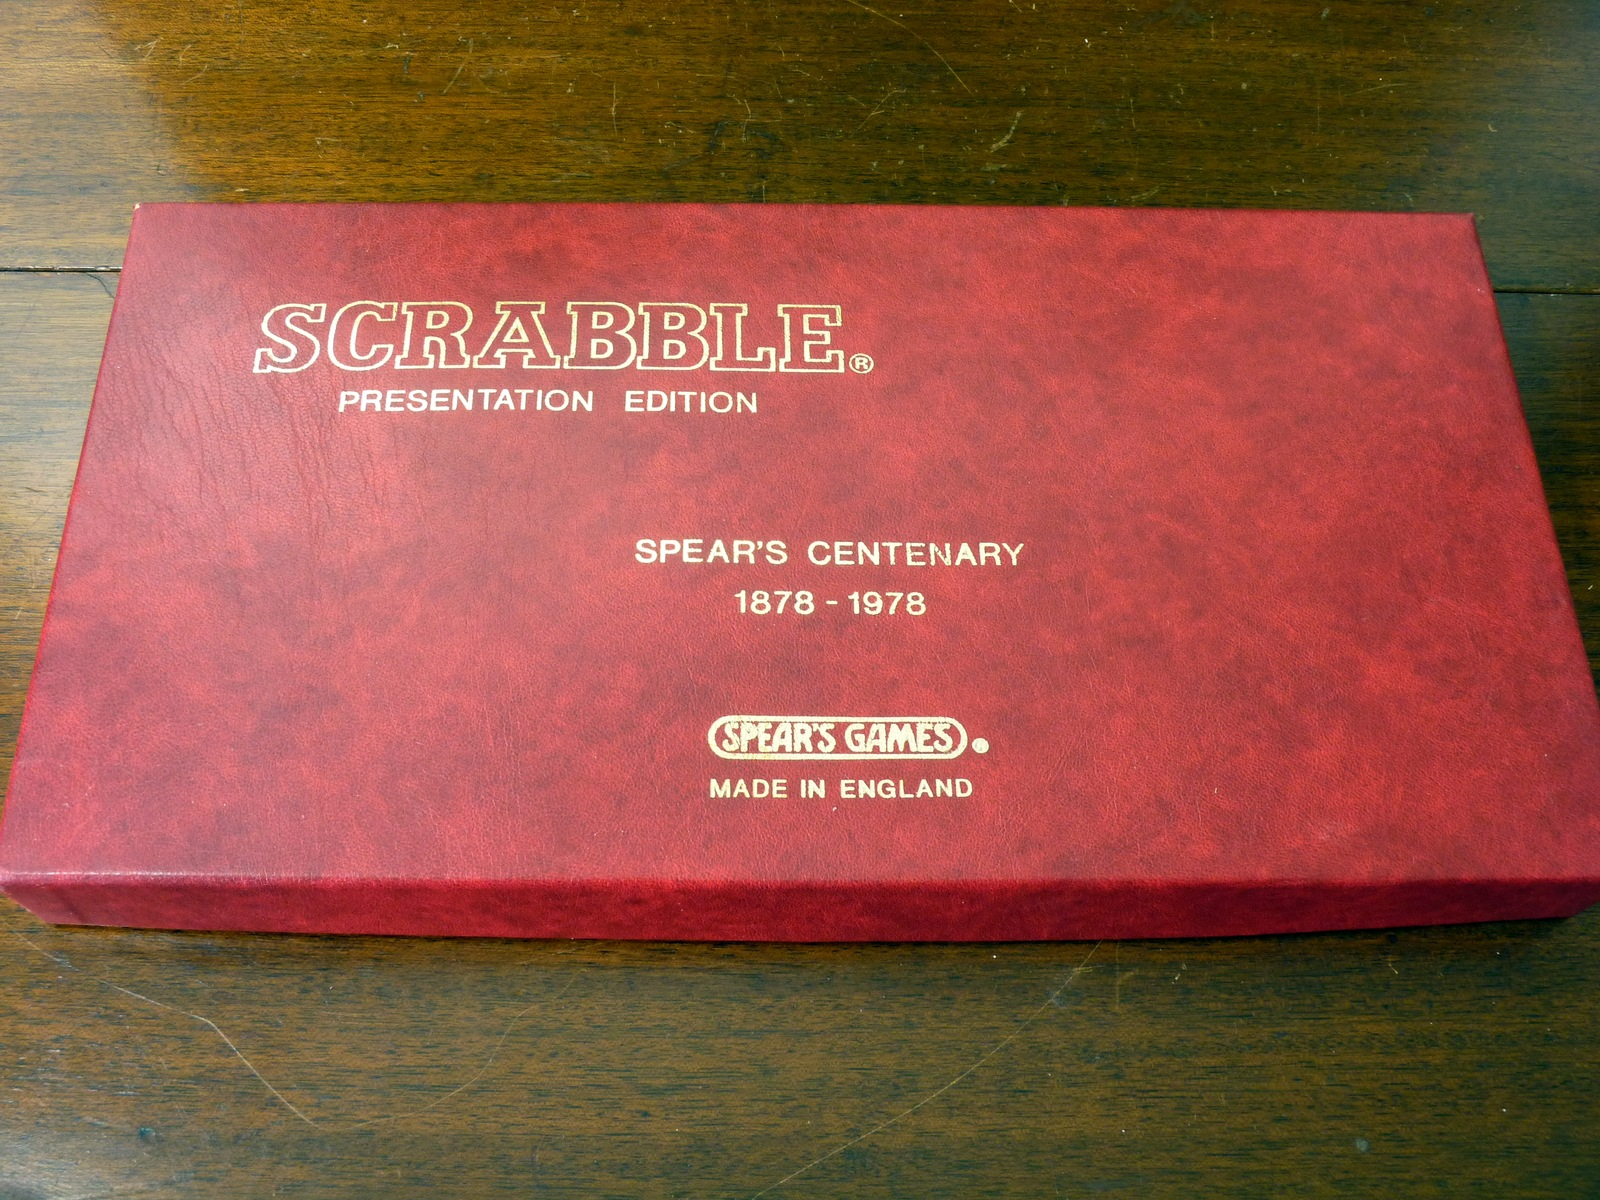 Spear's Games Centenary Scrabble Presentation Edition 1978